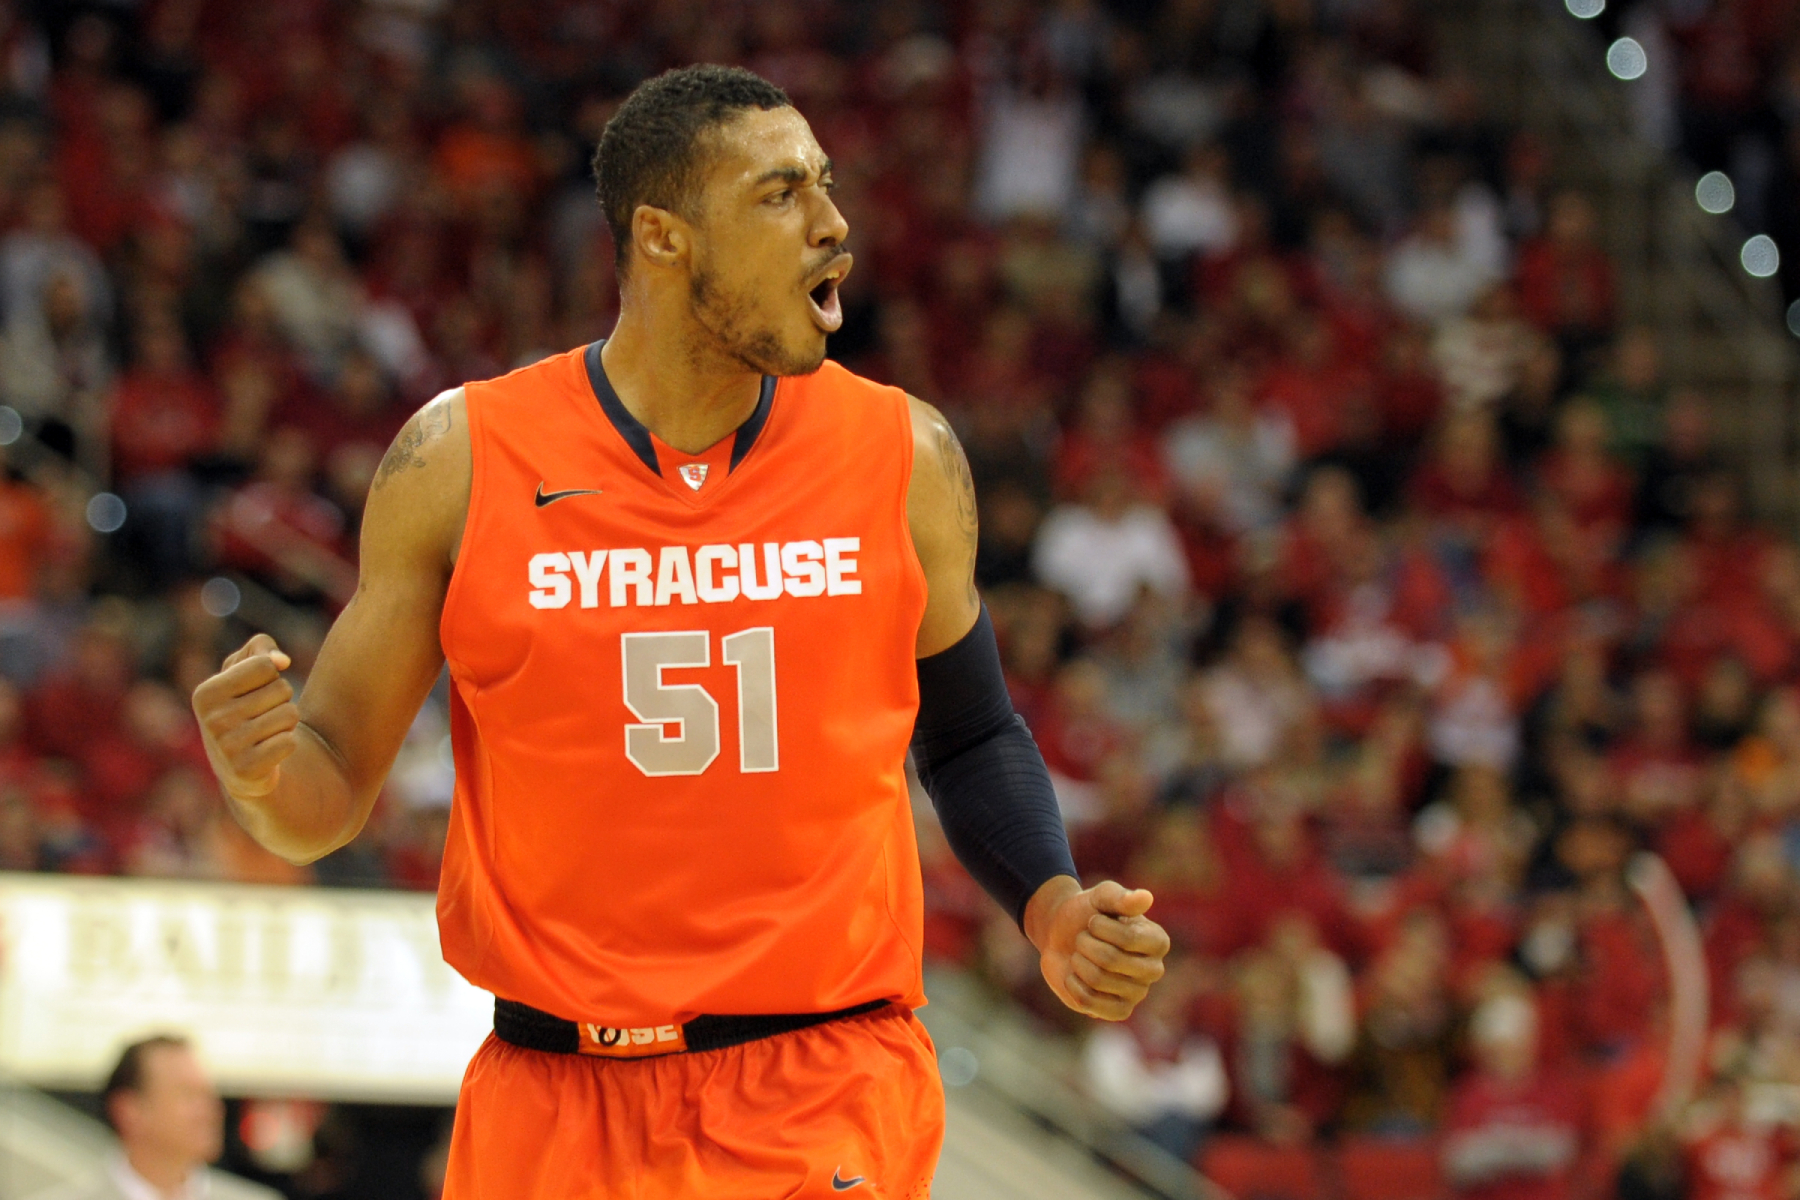 Fab Melo was a star at Syracuse and helped them become a top college basketball team in the country. He, however, died way too soon.